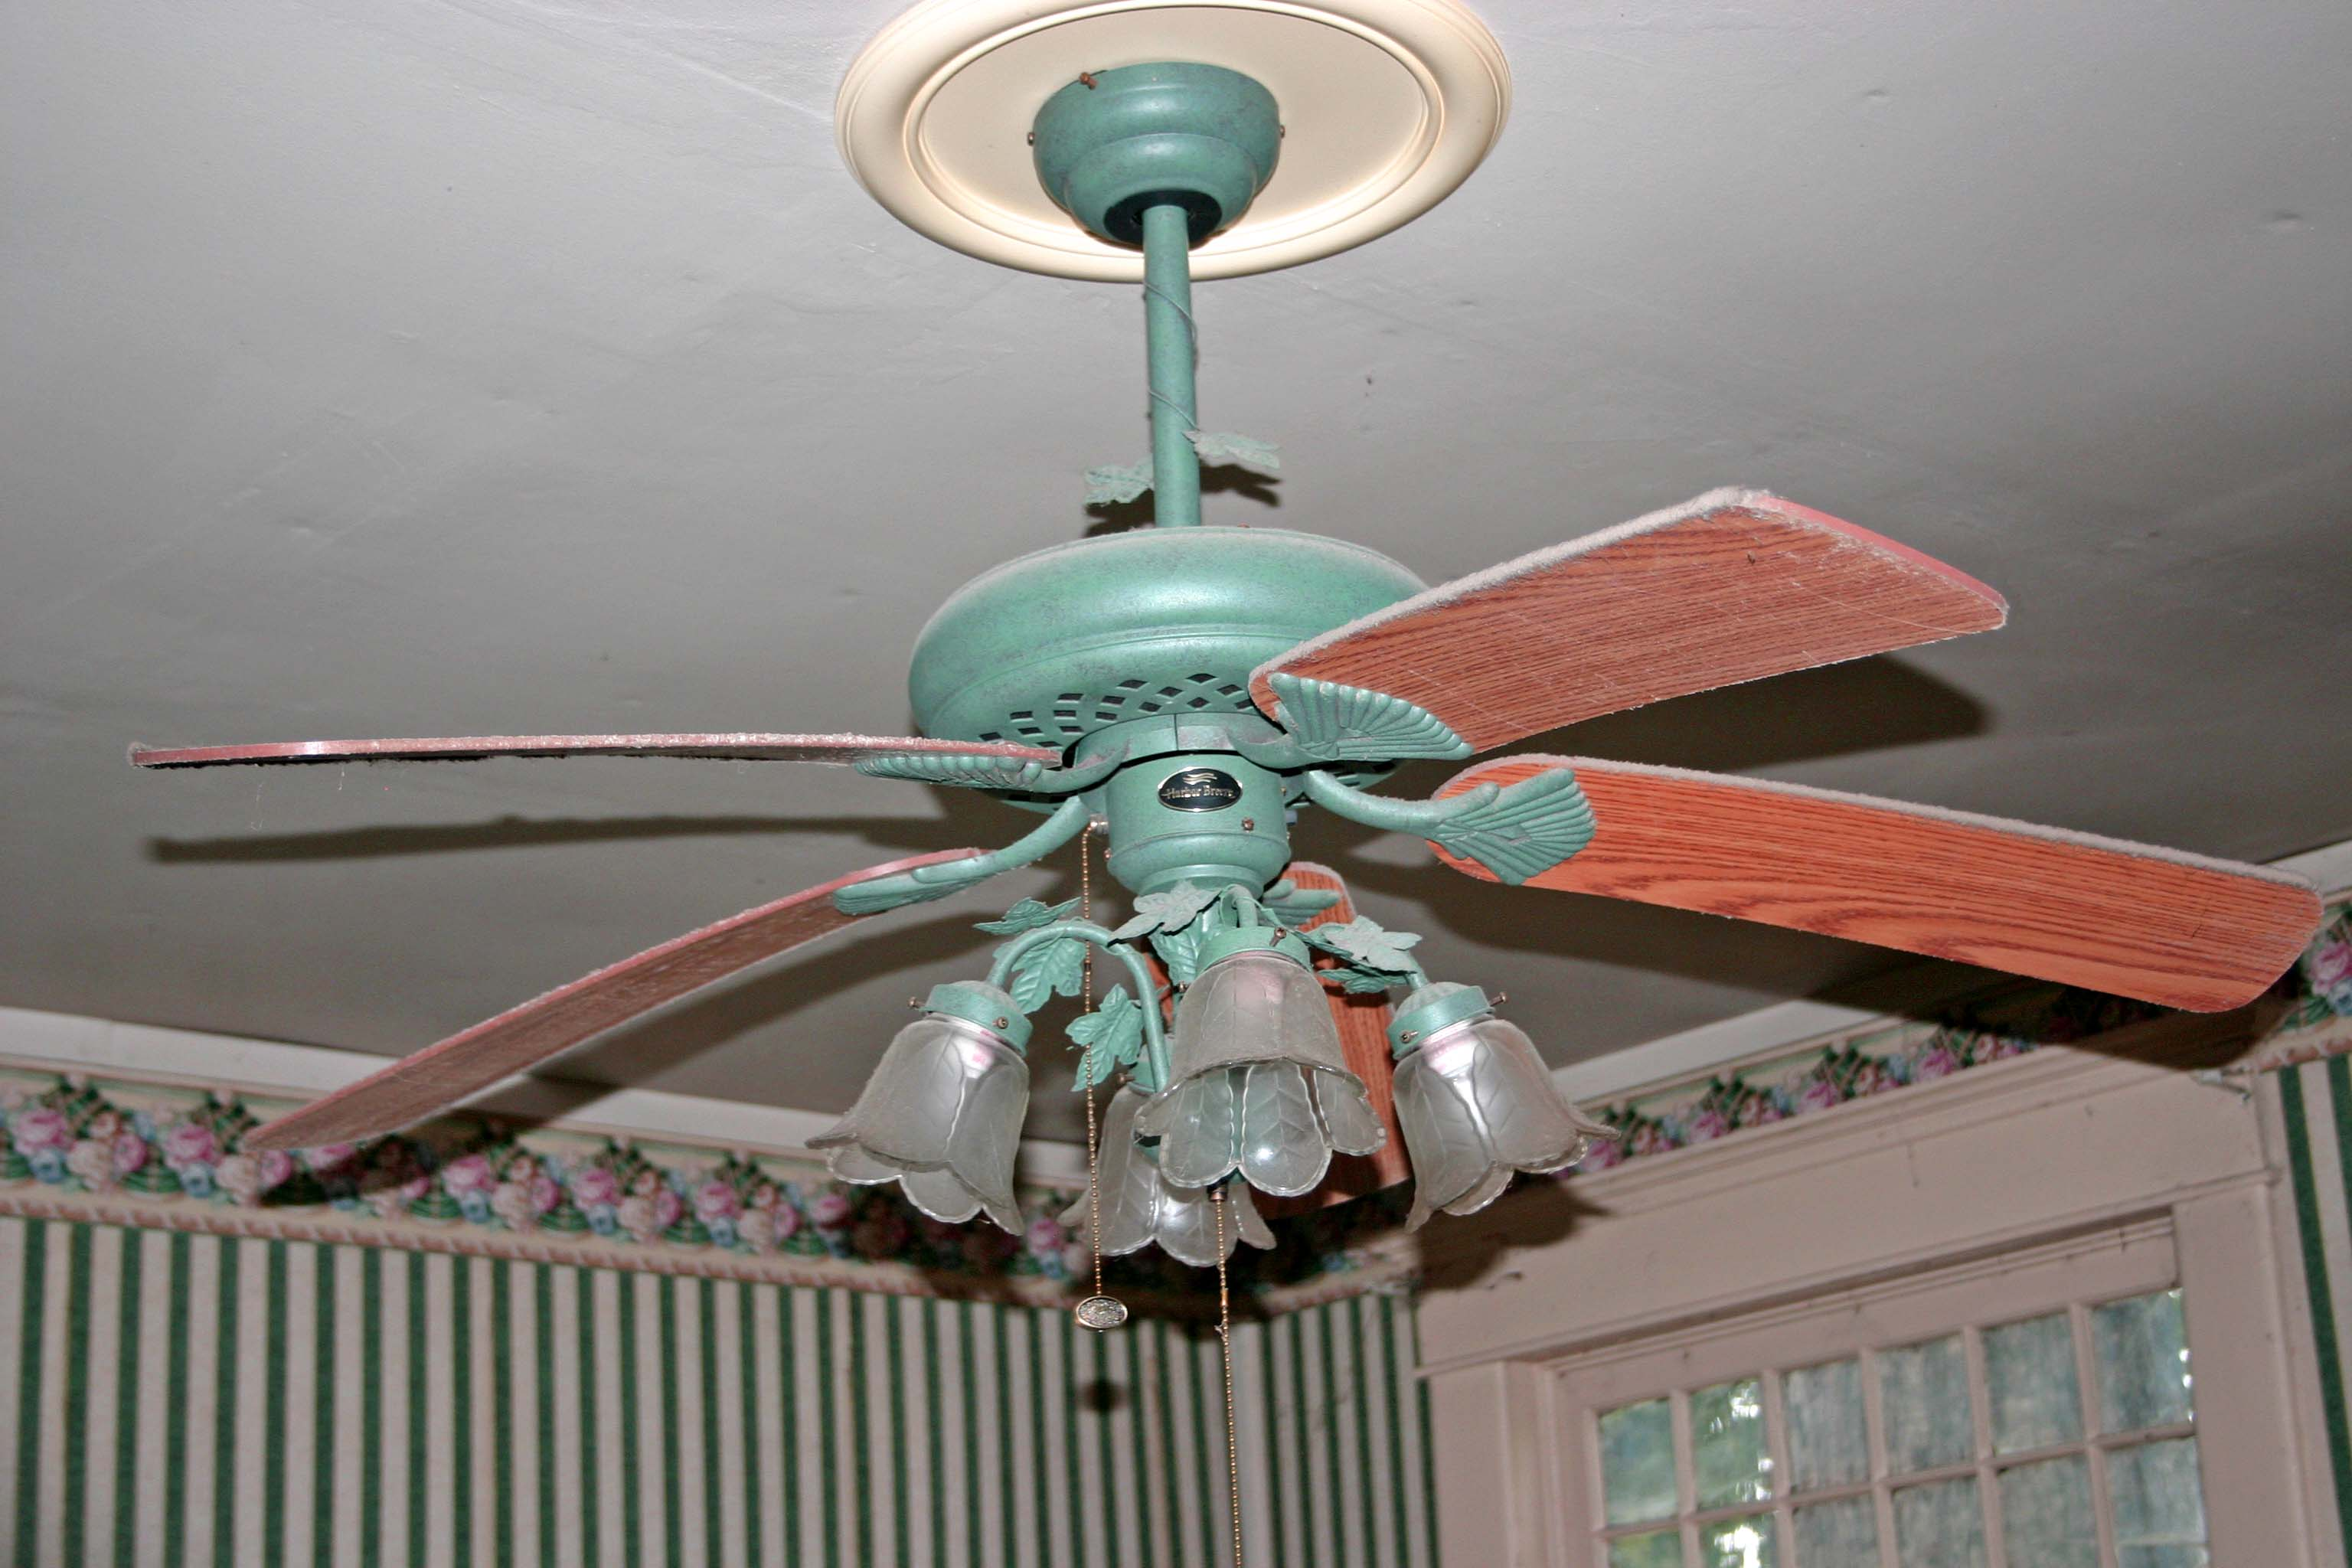 Ceiling Fans In My House